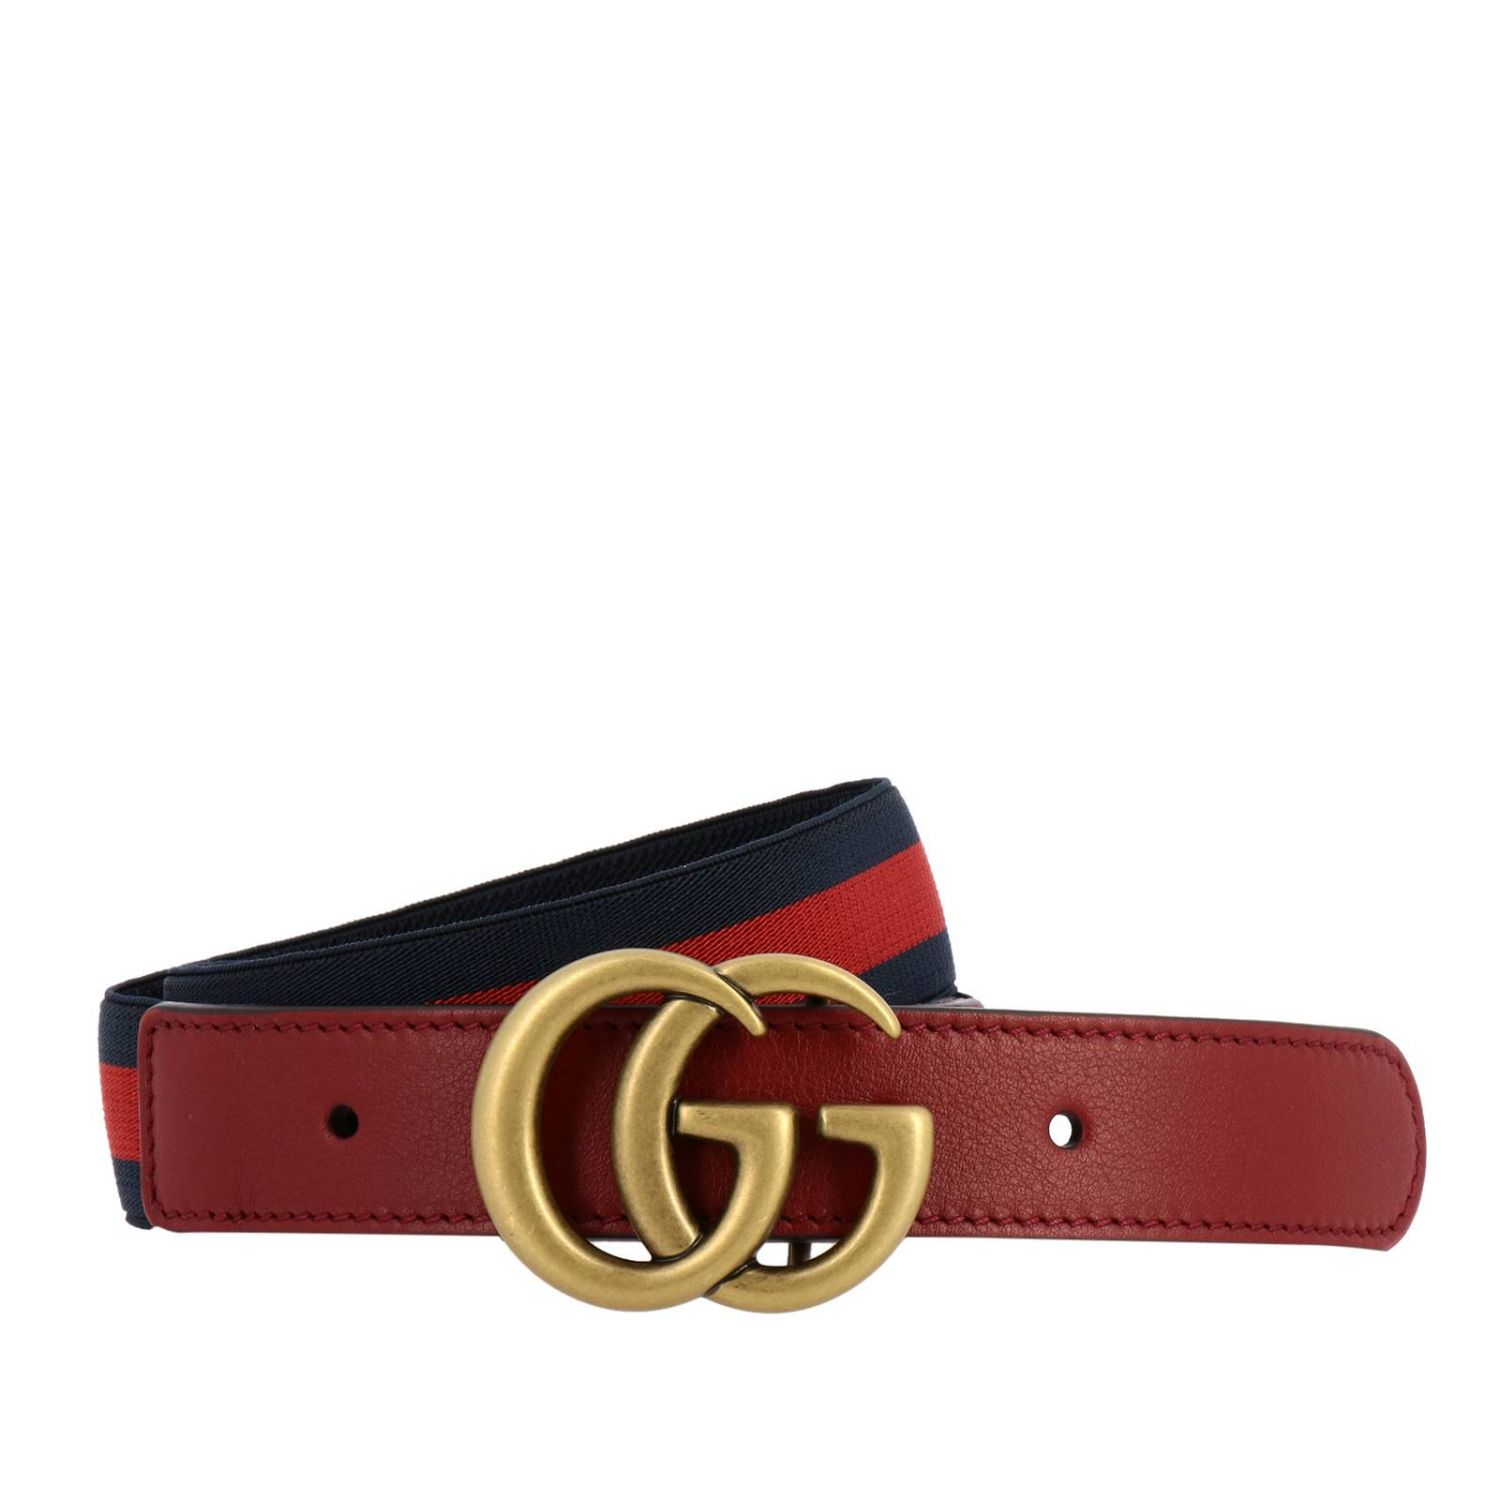 Marmont belt in leather with Web elastic and GG Gucci monogram blue 1